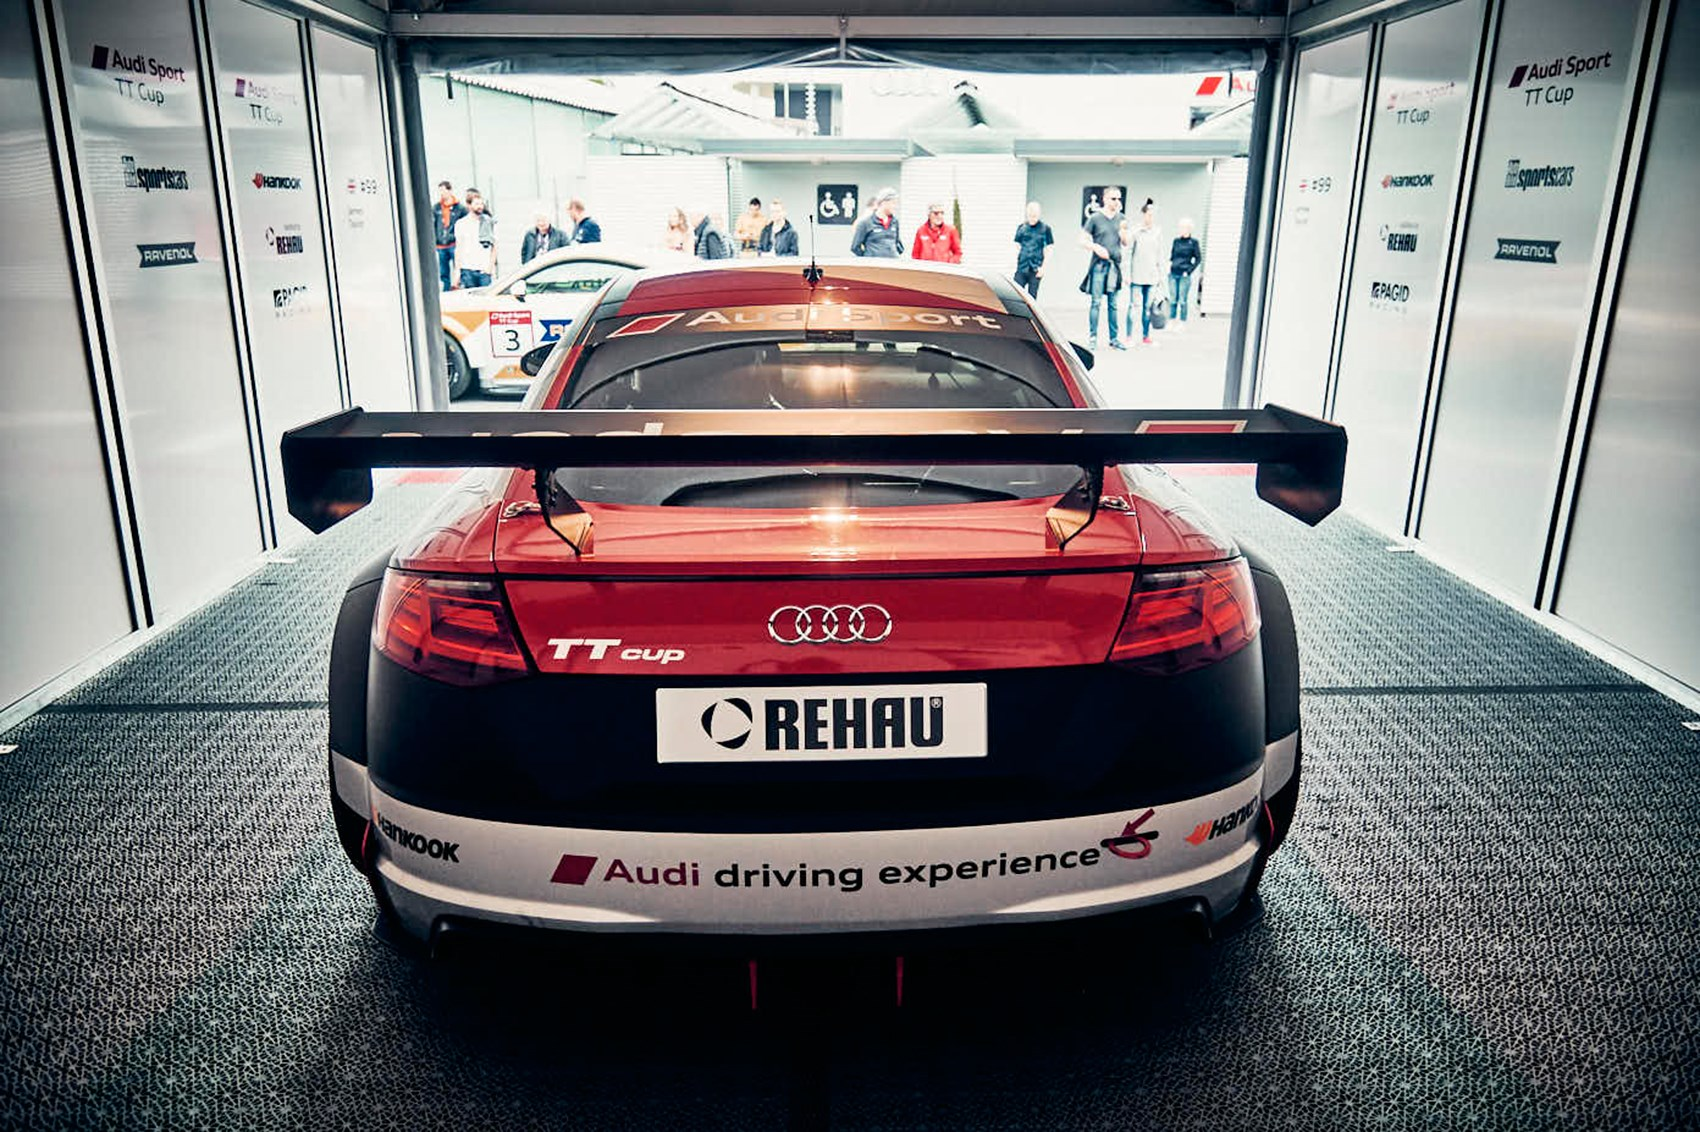 car magazine races in the 2017 audi sport tt cup by car magazine. Black Bedroom Furniture Sets. Home Design Ideas